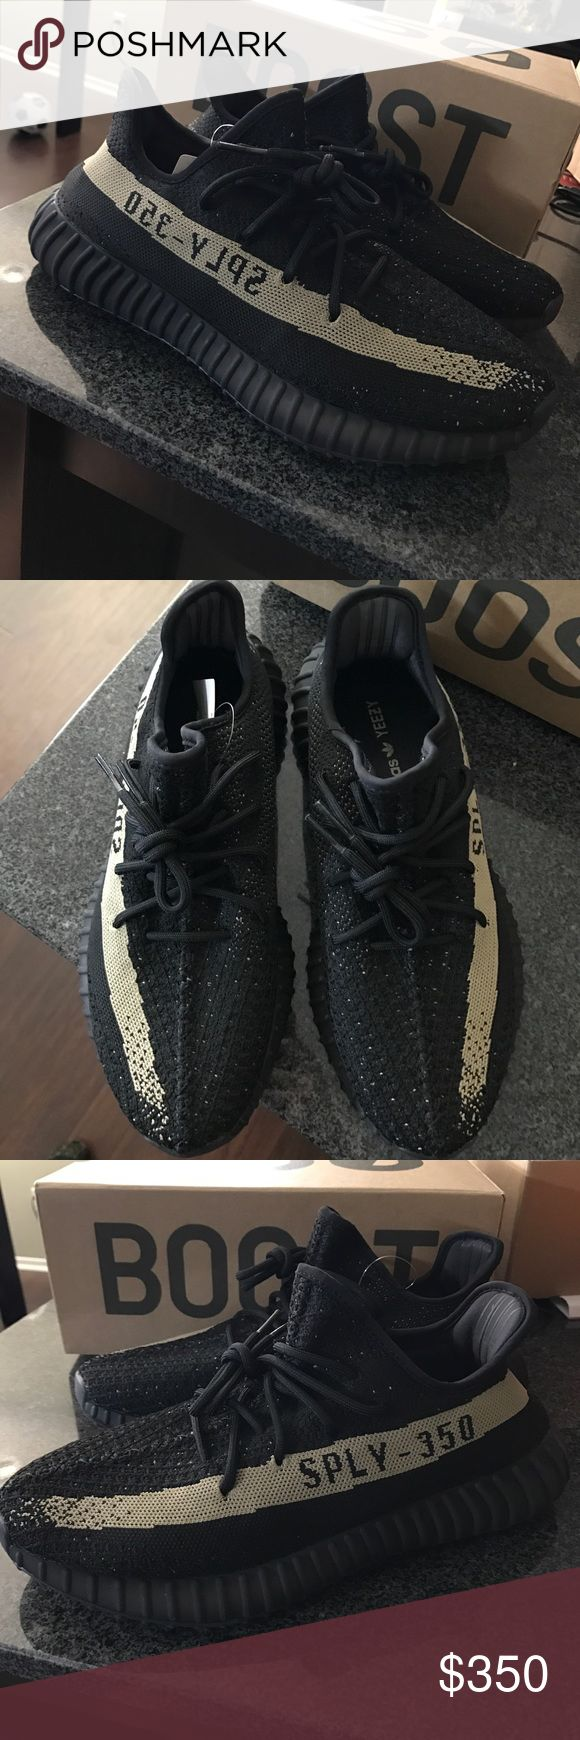 adidas palace pro suede yeezy boost 350 pirate black size 13